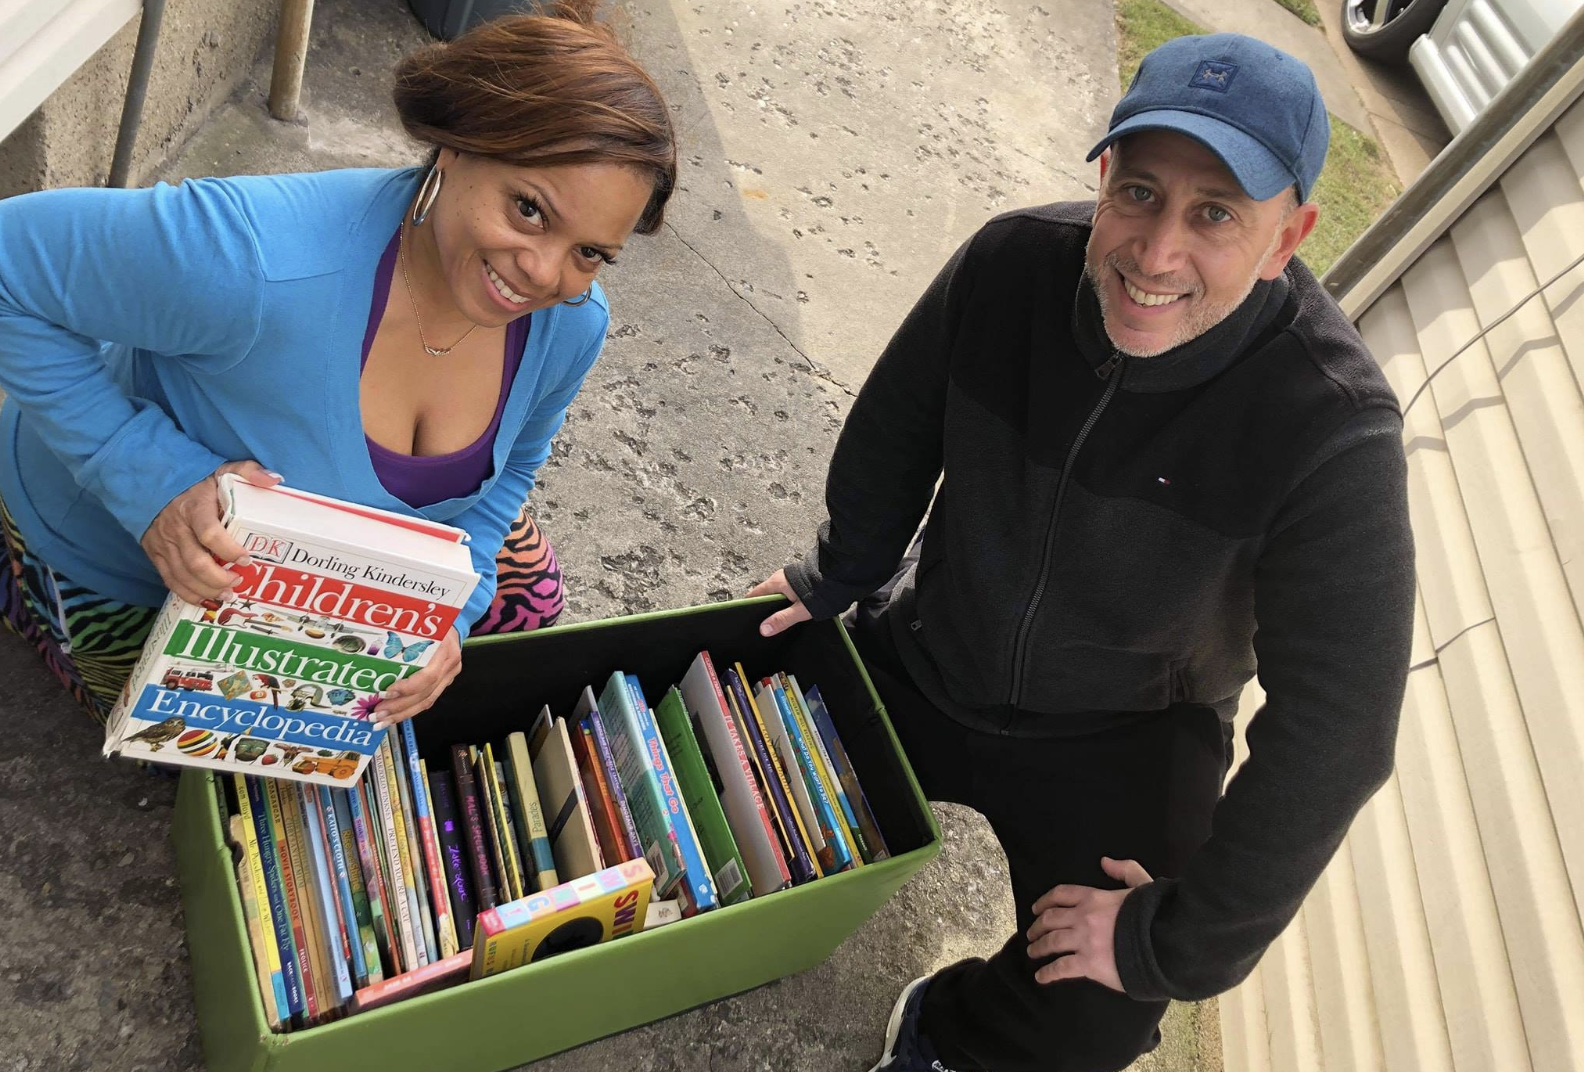 American Teachers packing books in boxes